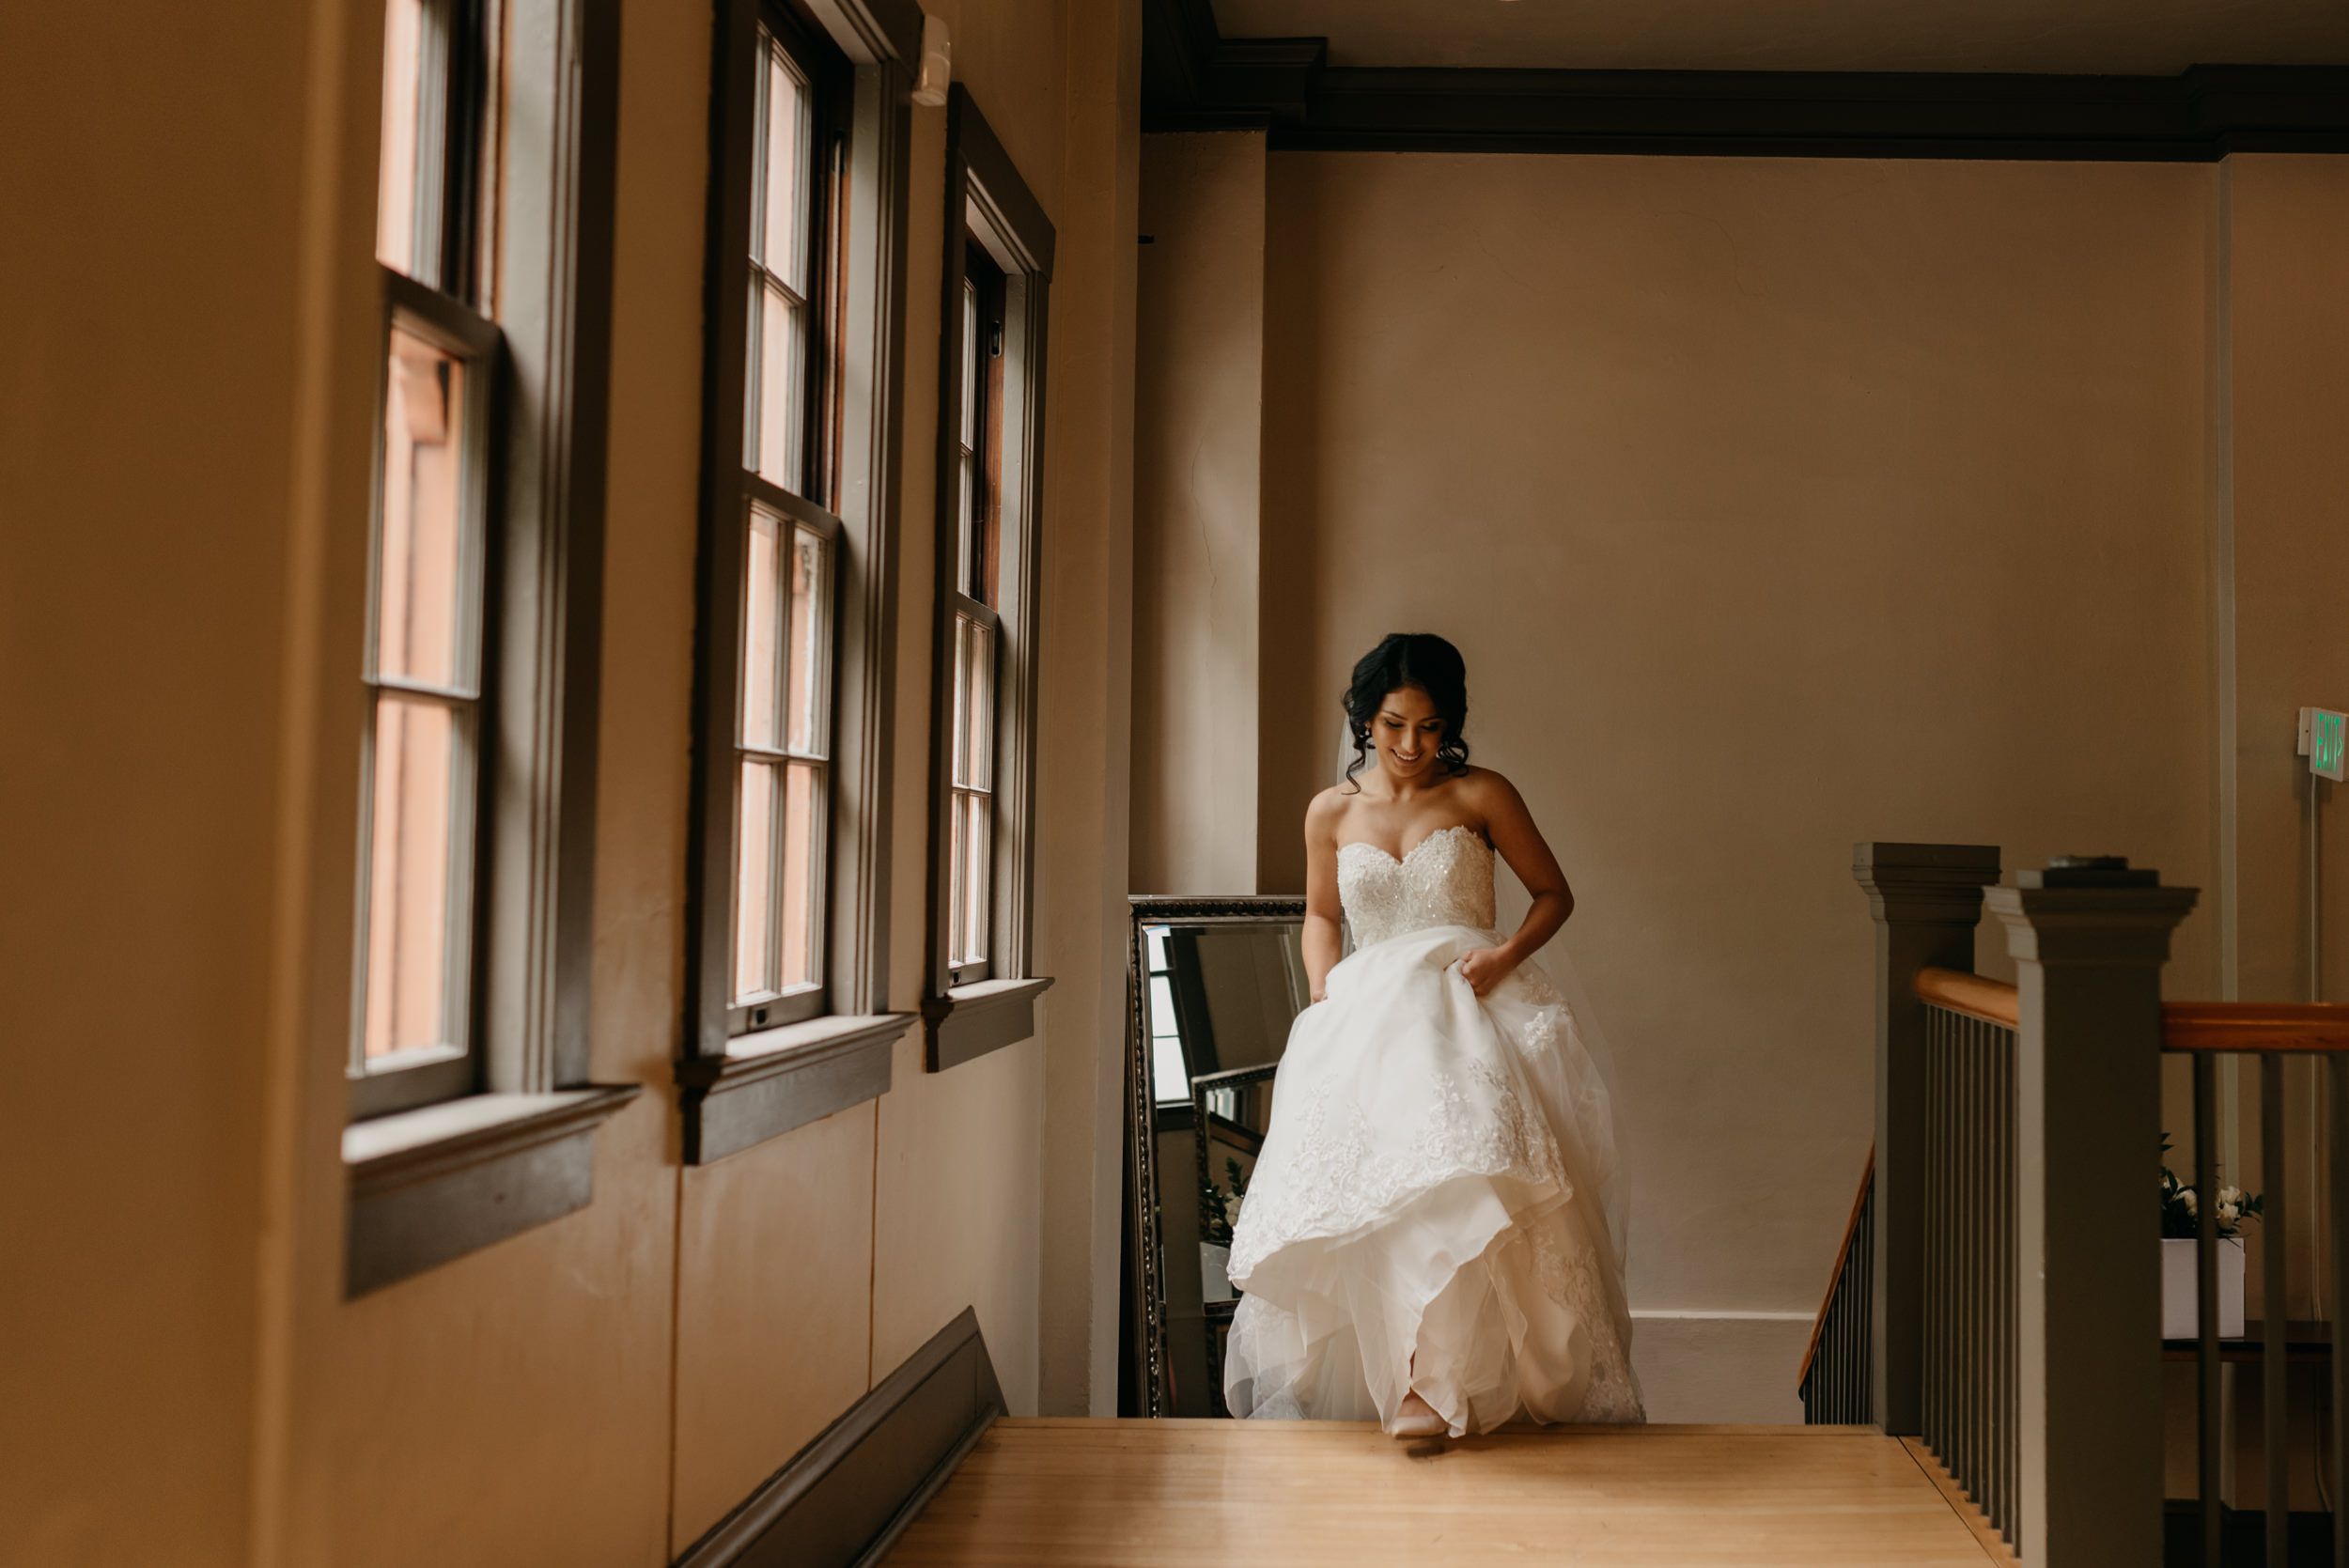 31-bridal-party-downtown-portland-first-look-7324.jpg